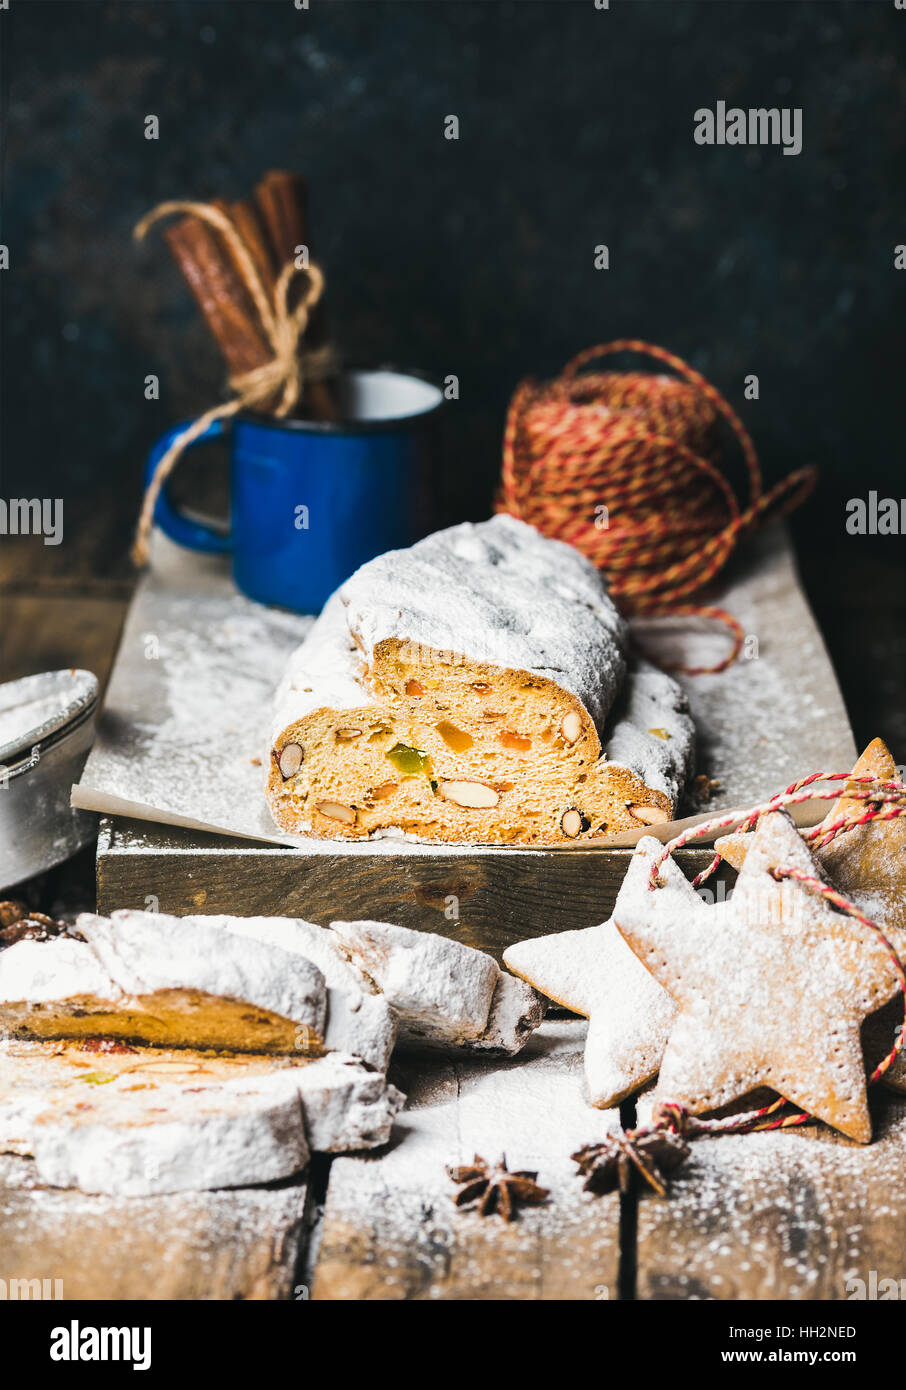 Traditional German Christmas cake Stollen with festive gingerbread cookies - Stock Image